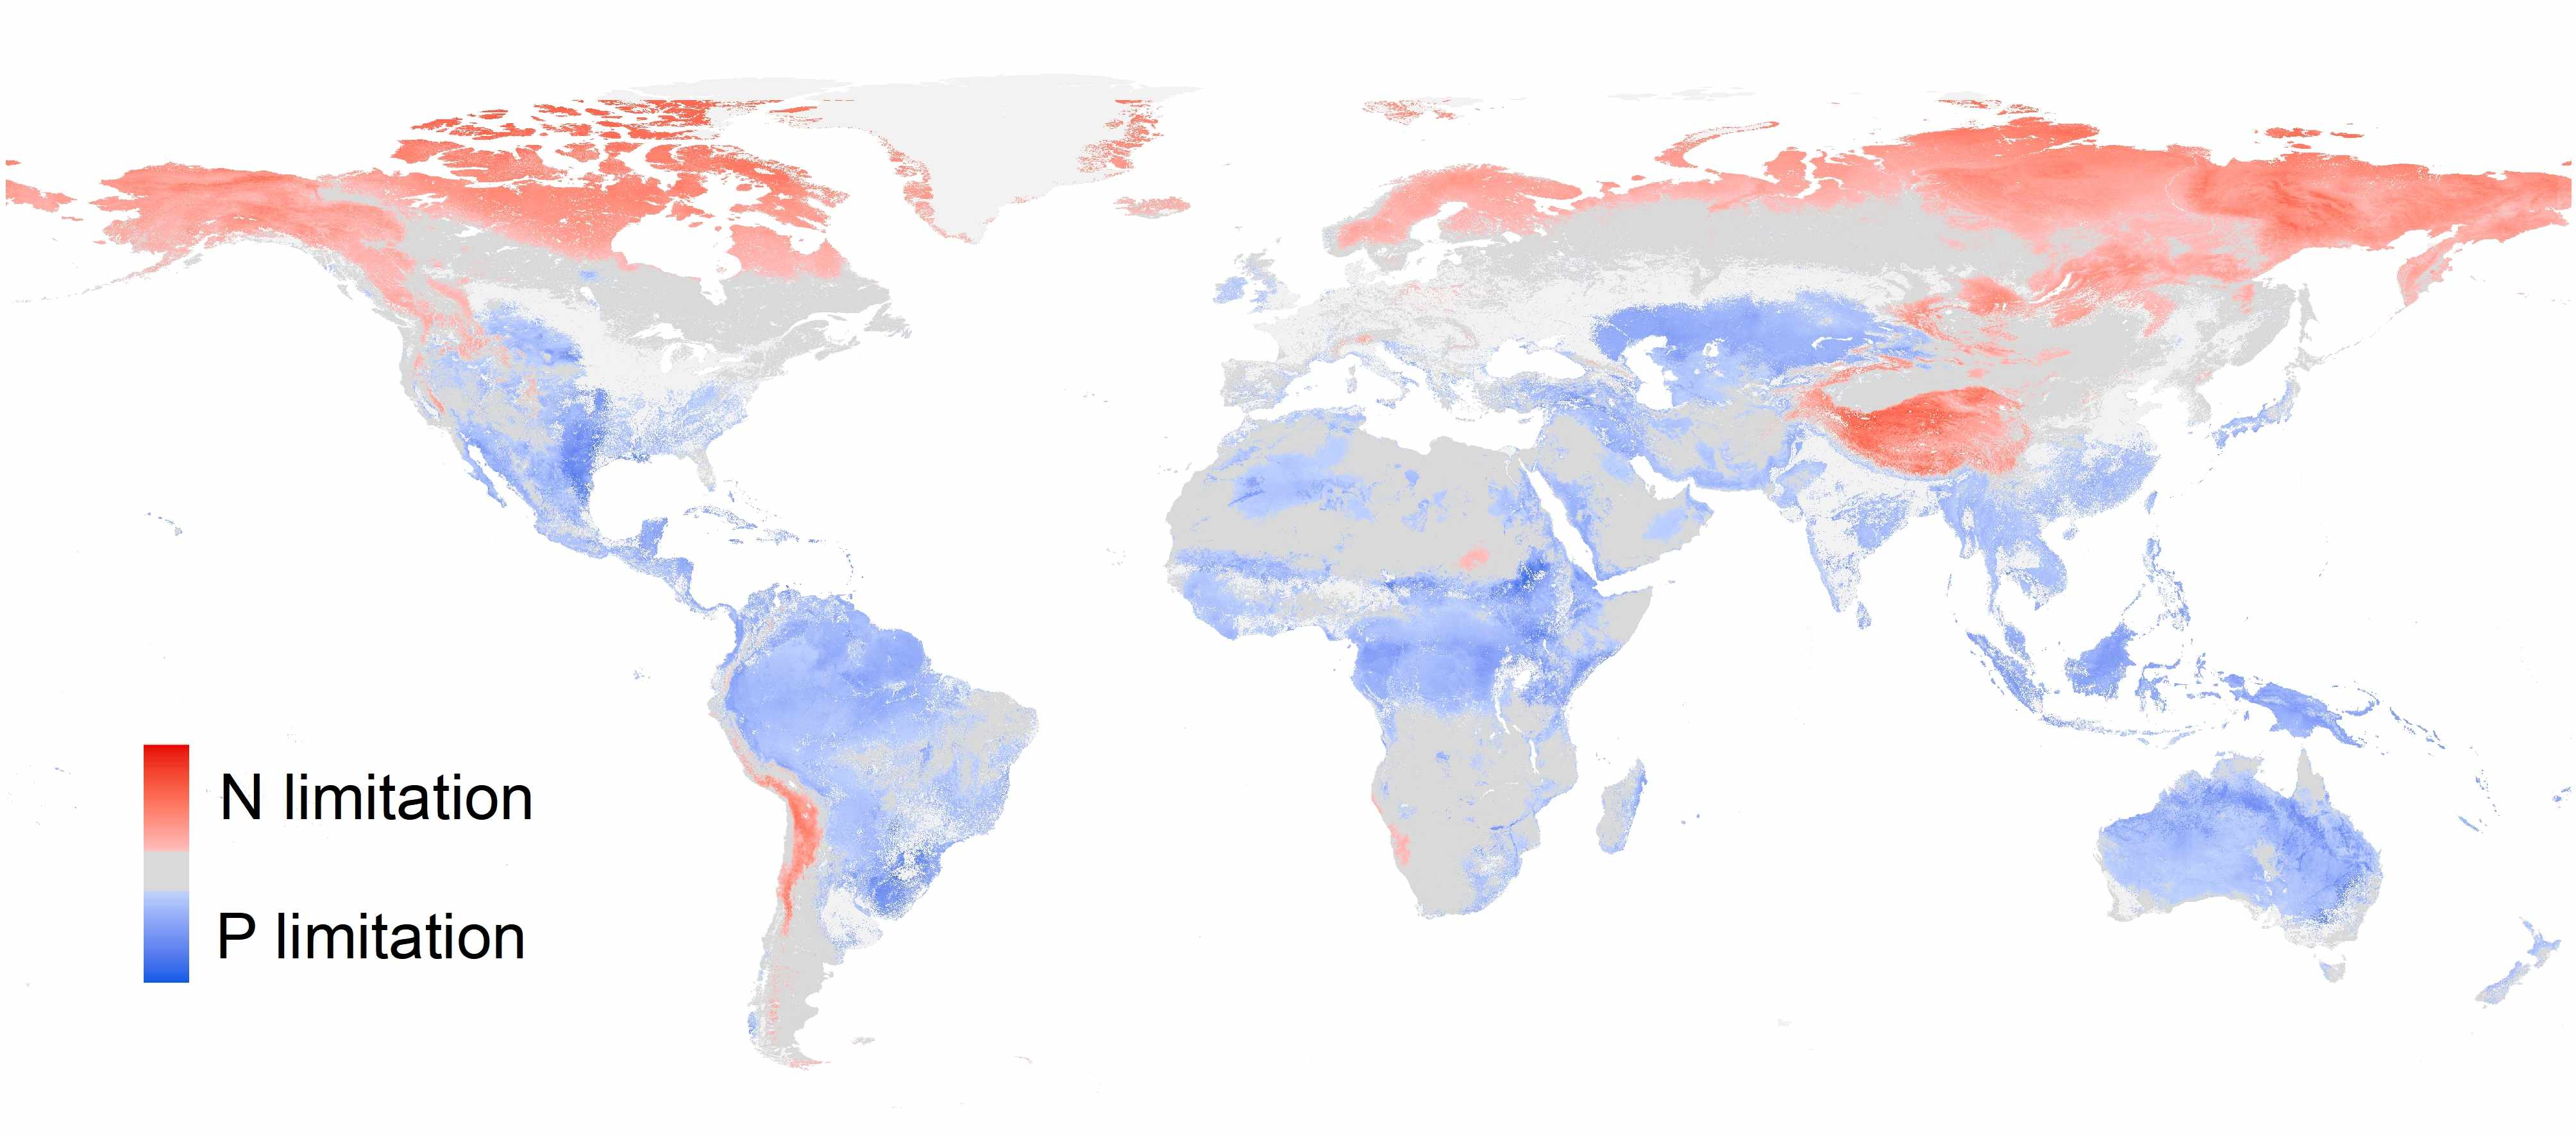 Global patterns of terrestrial nitrogen and phosphorus limitation